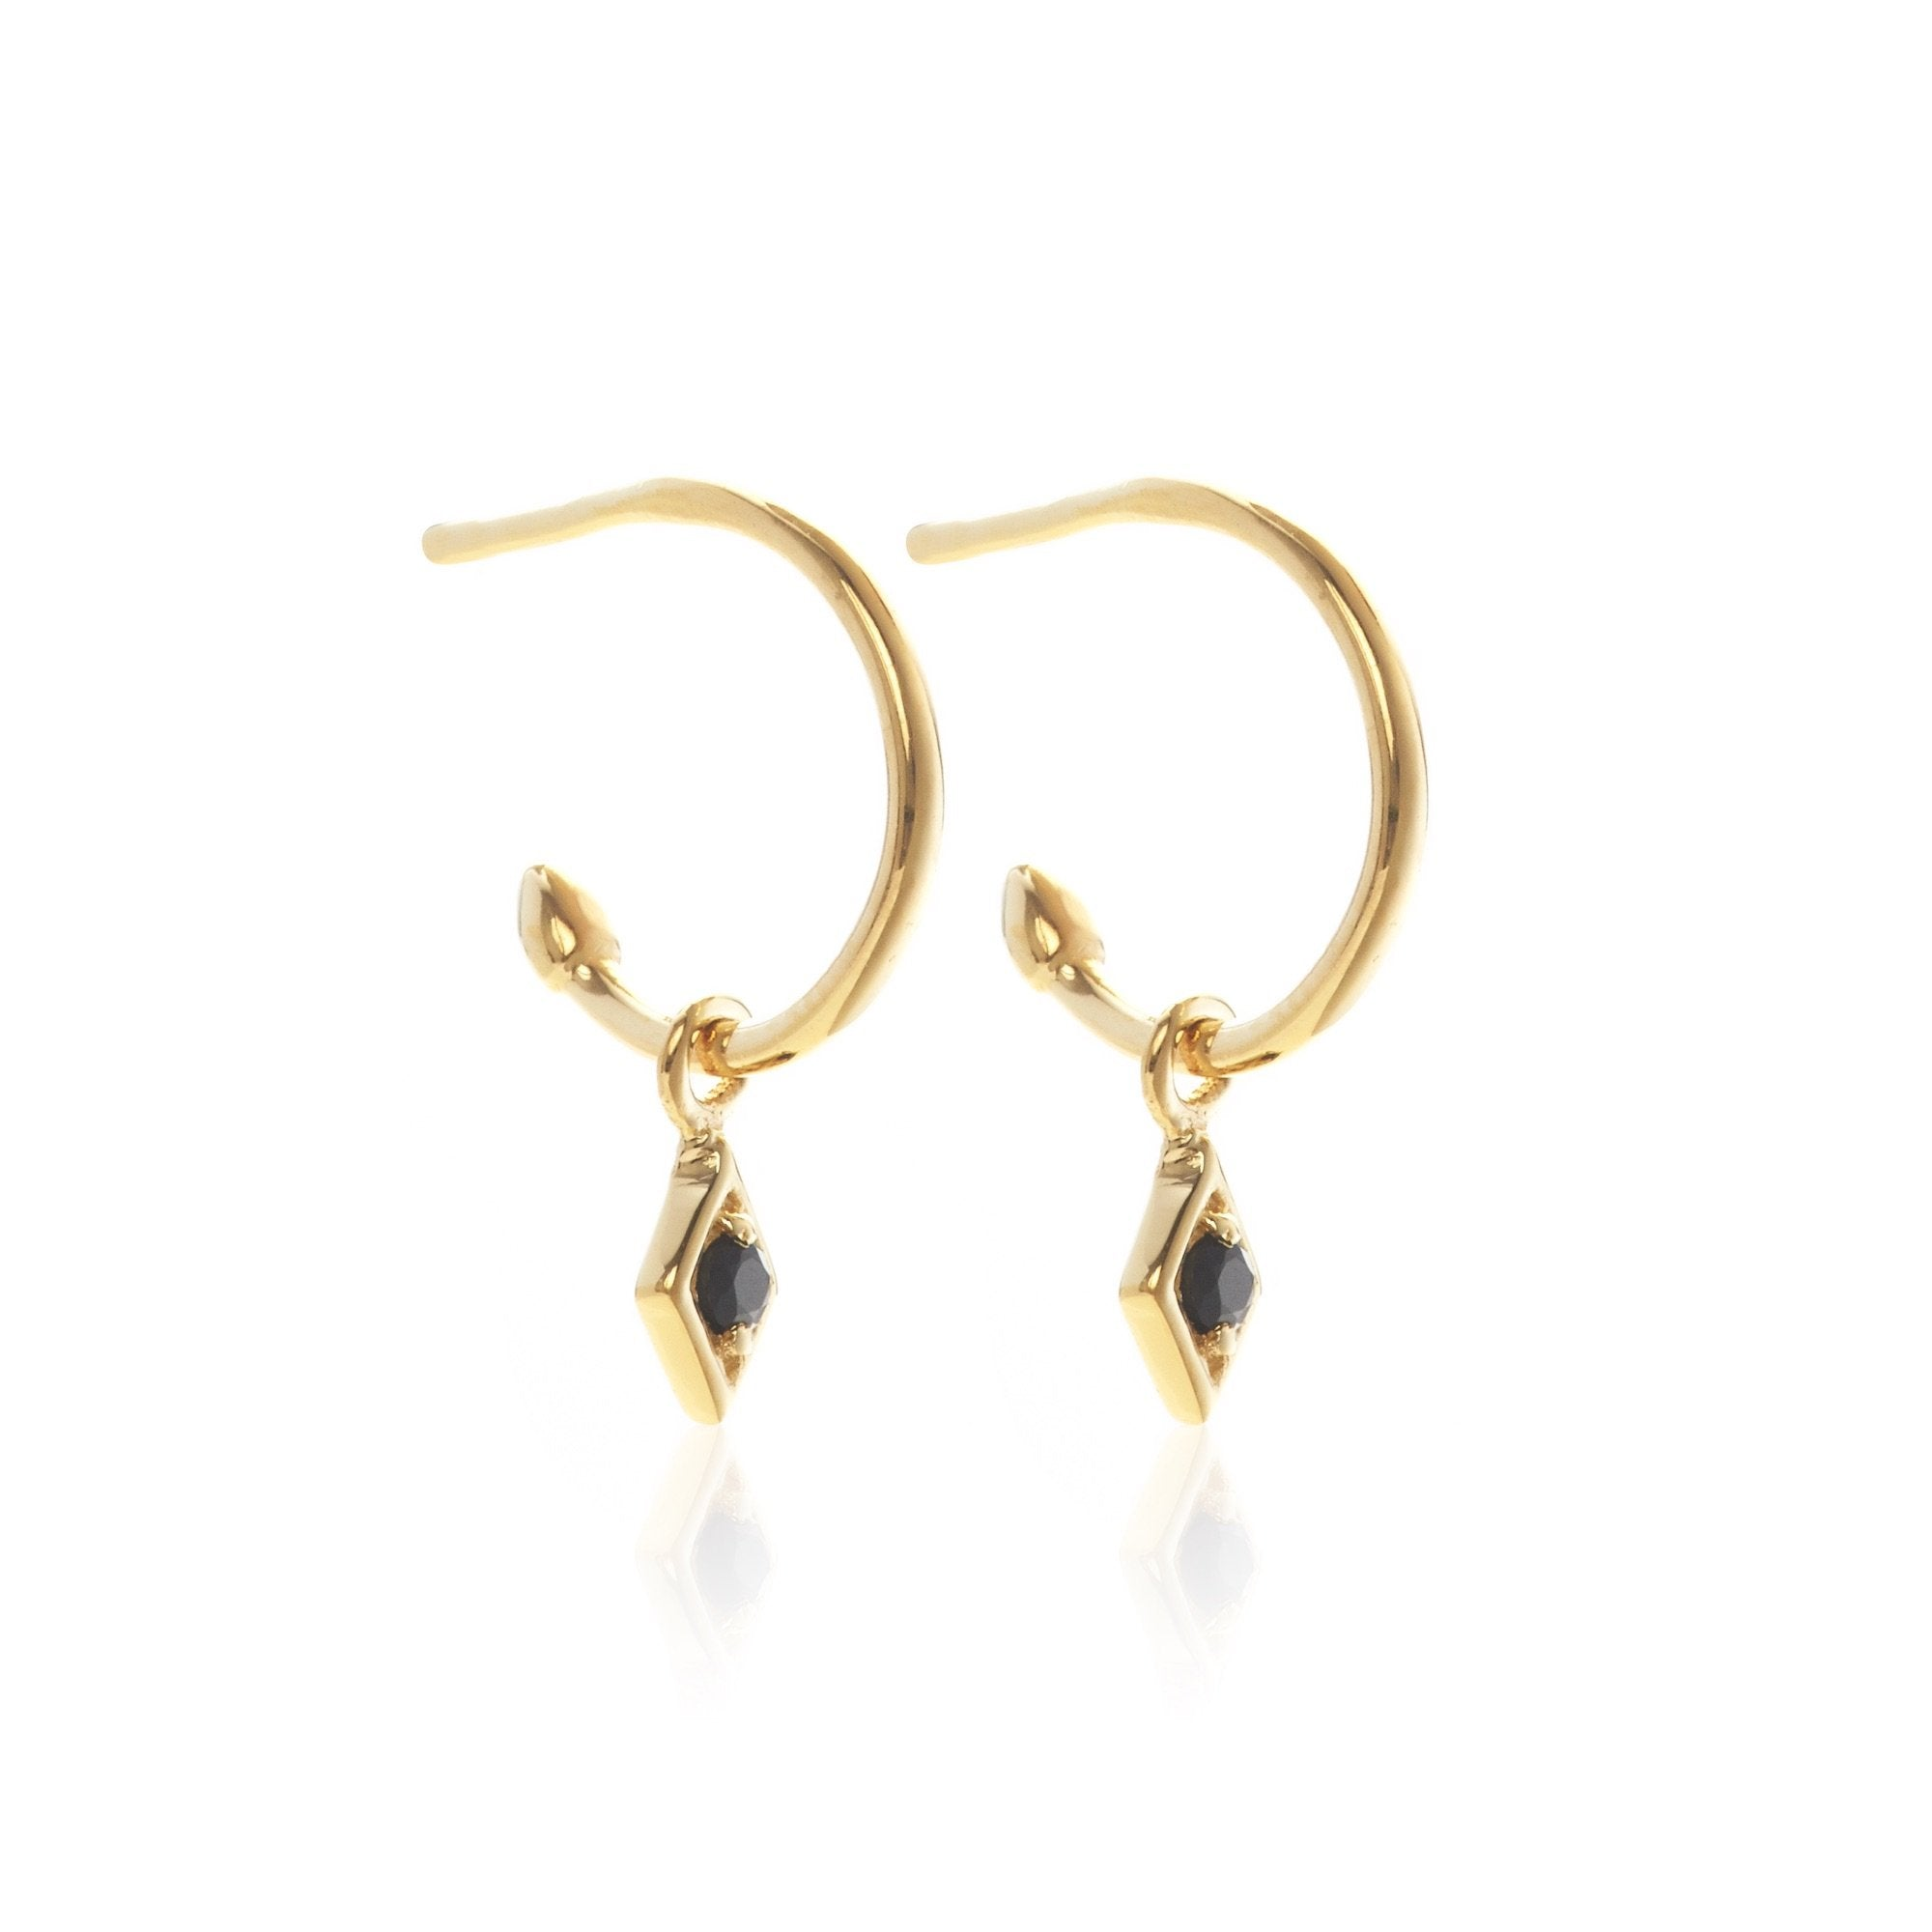 Silk & Steel Jewellery Superfine Keepsake Gold and Black Spinel hoop earrings